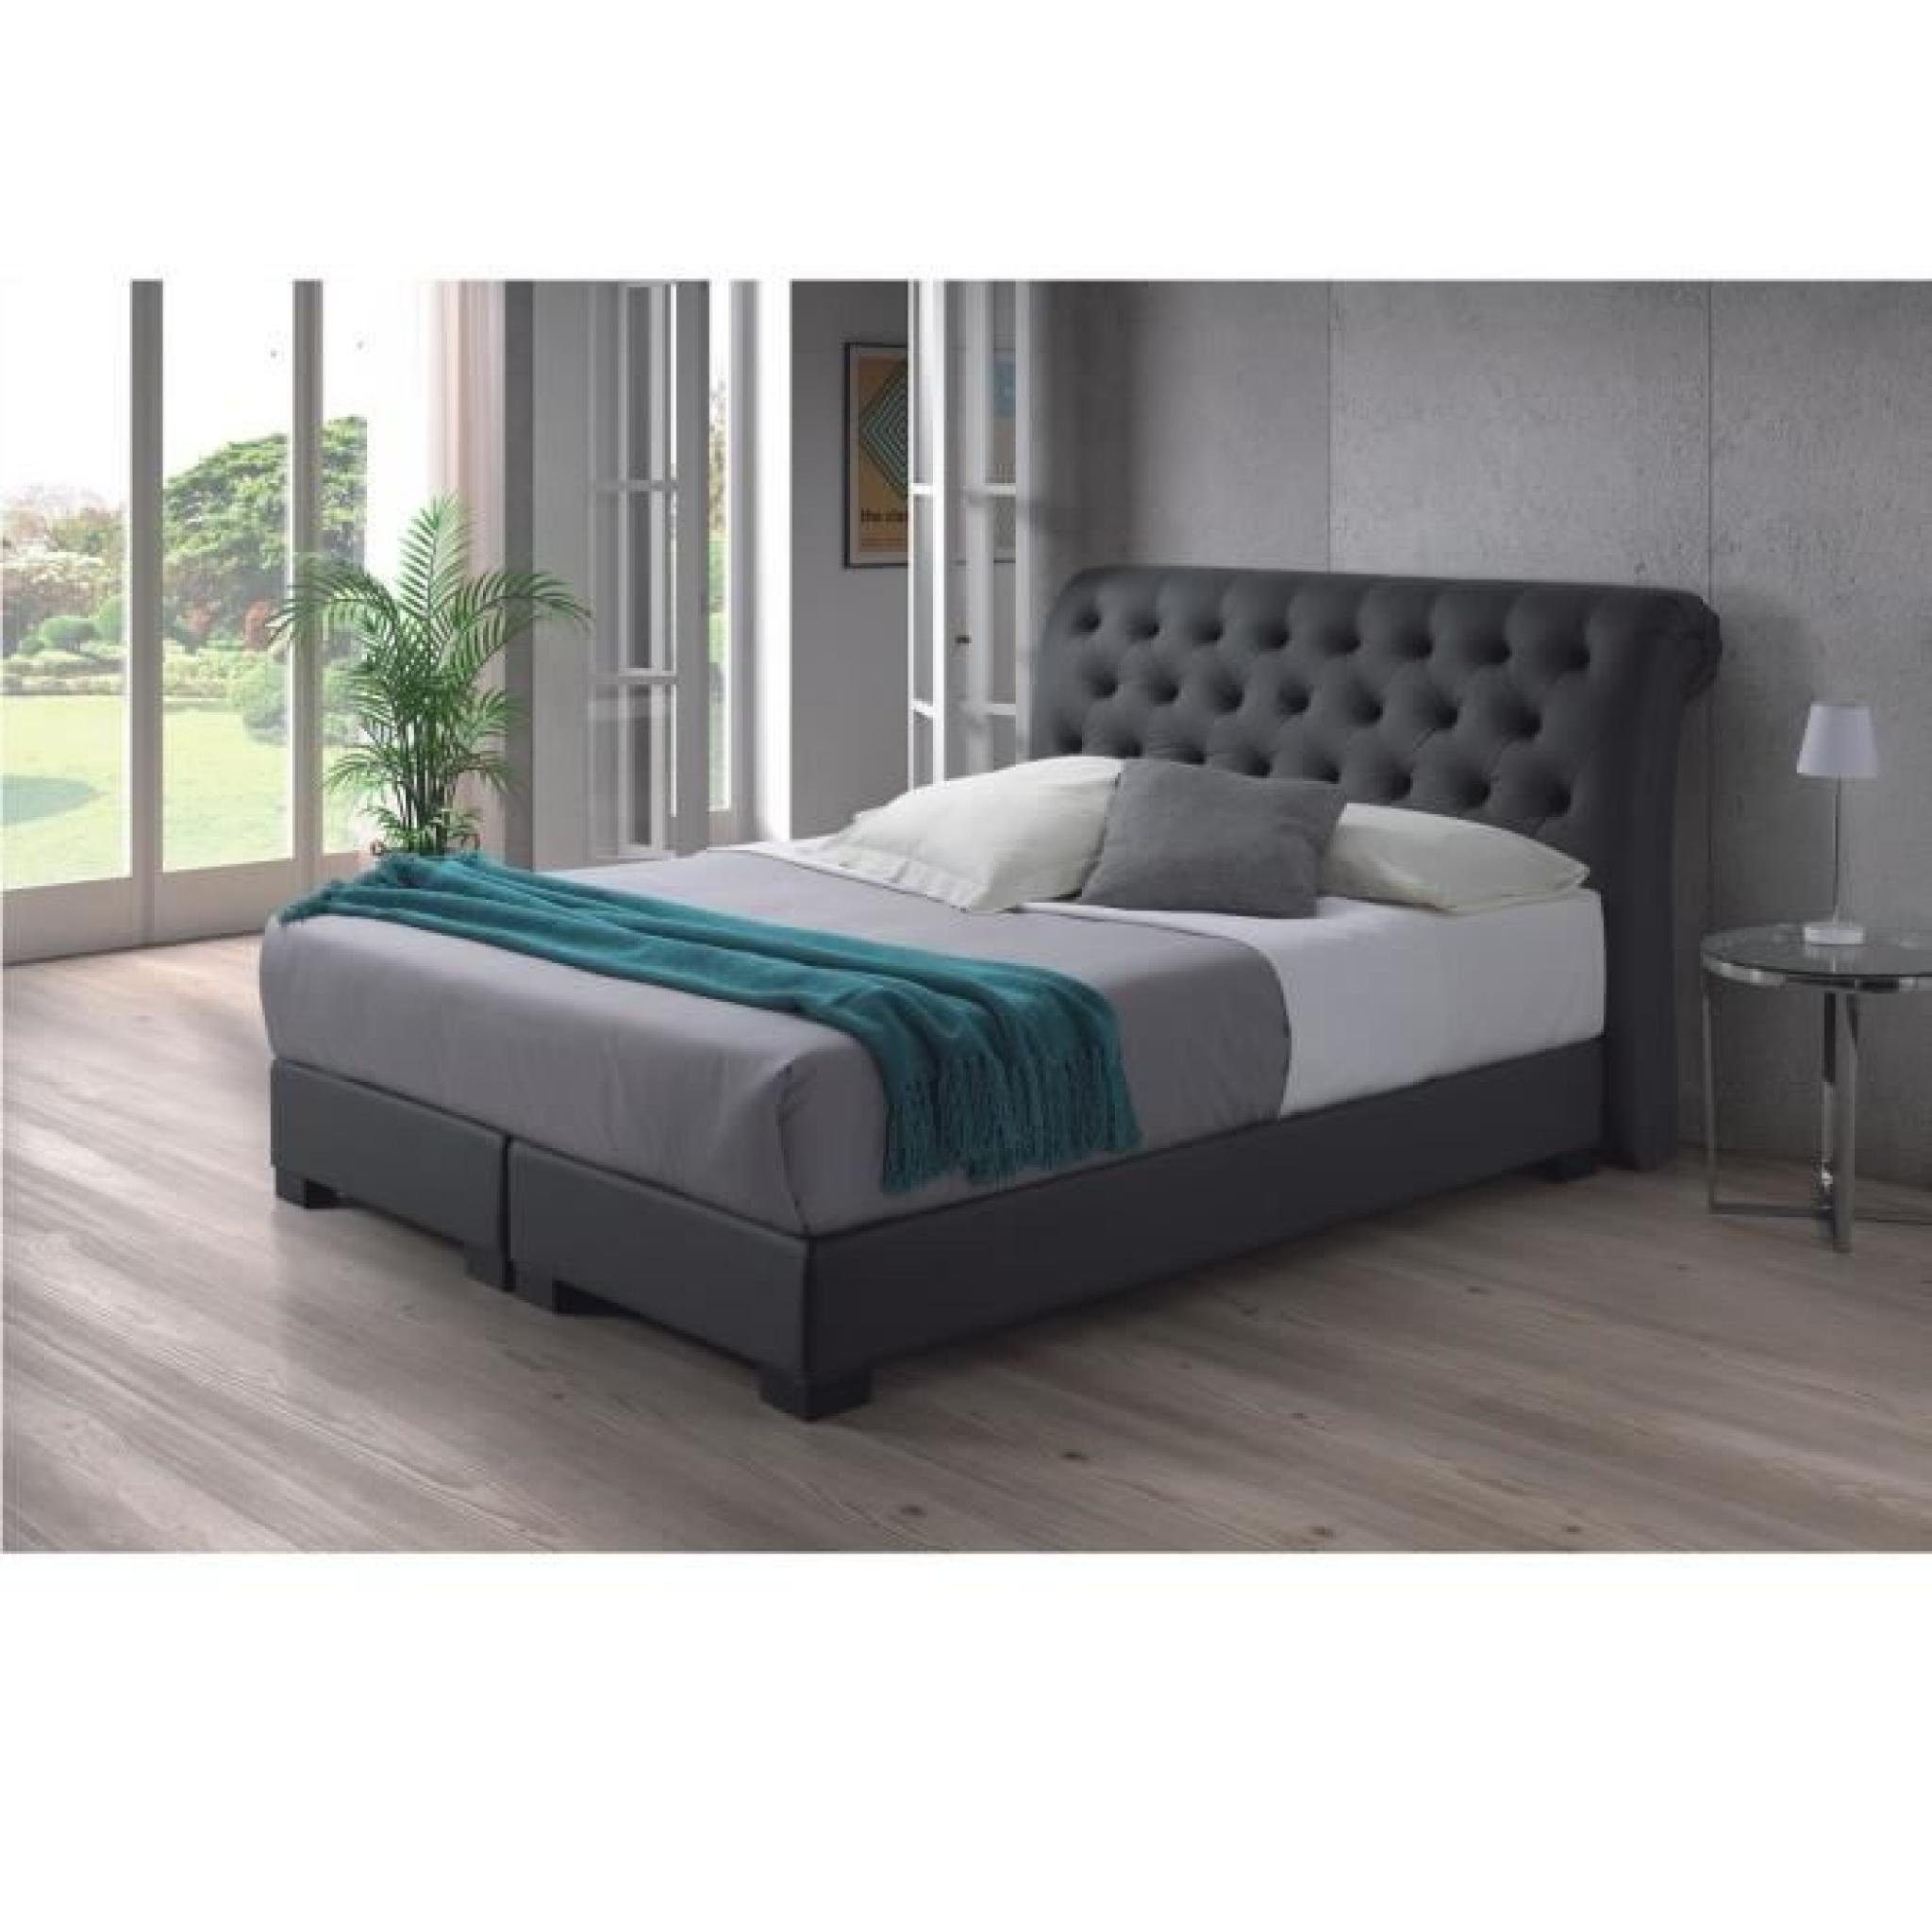 molly lit adulte 160x200 cm boxspring avec matelas gris achat vente lit pas cher couleur. Black Bedroom Furniture Sets. Home Design Ideas